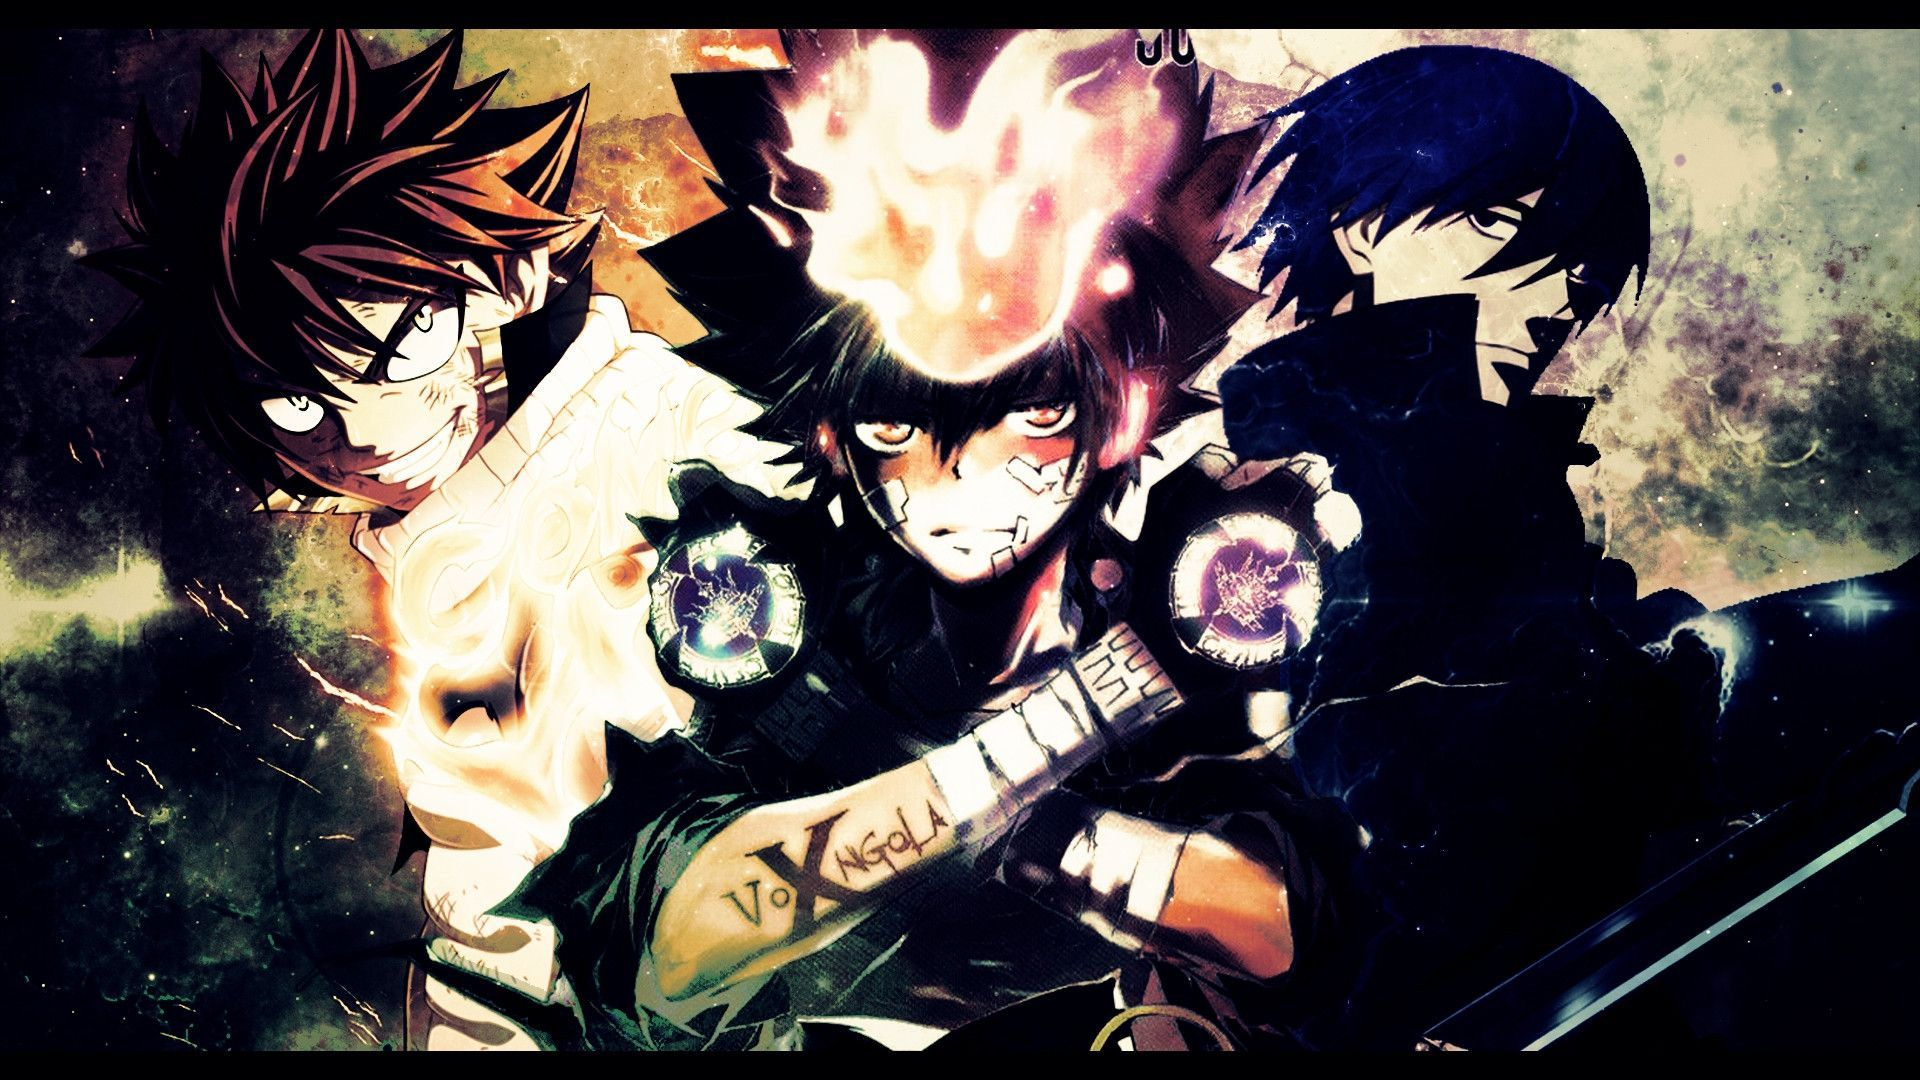 Epic Anime Wallpaper Picture Sdeerwallpaper